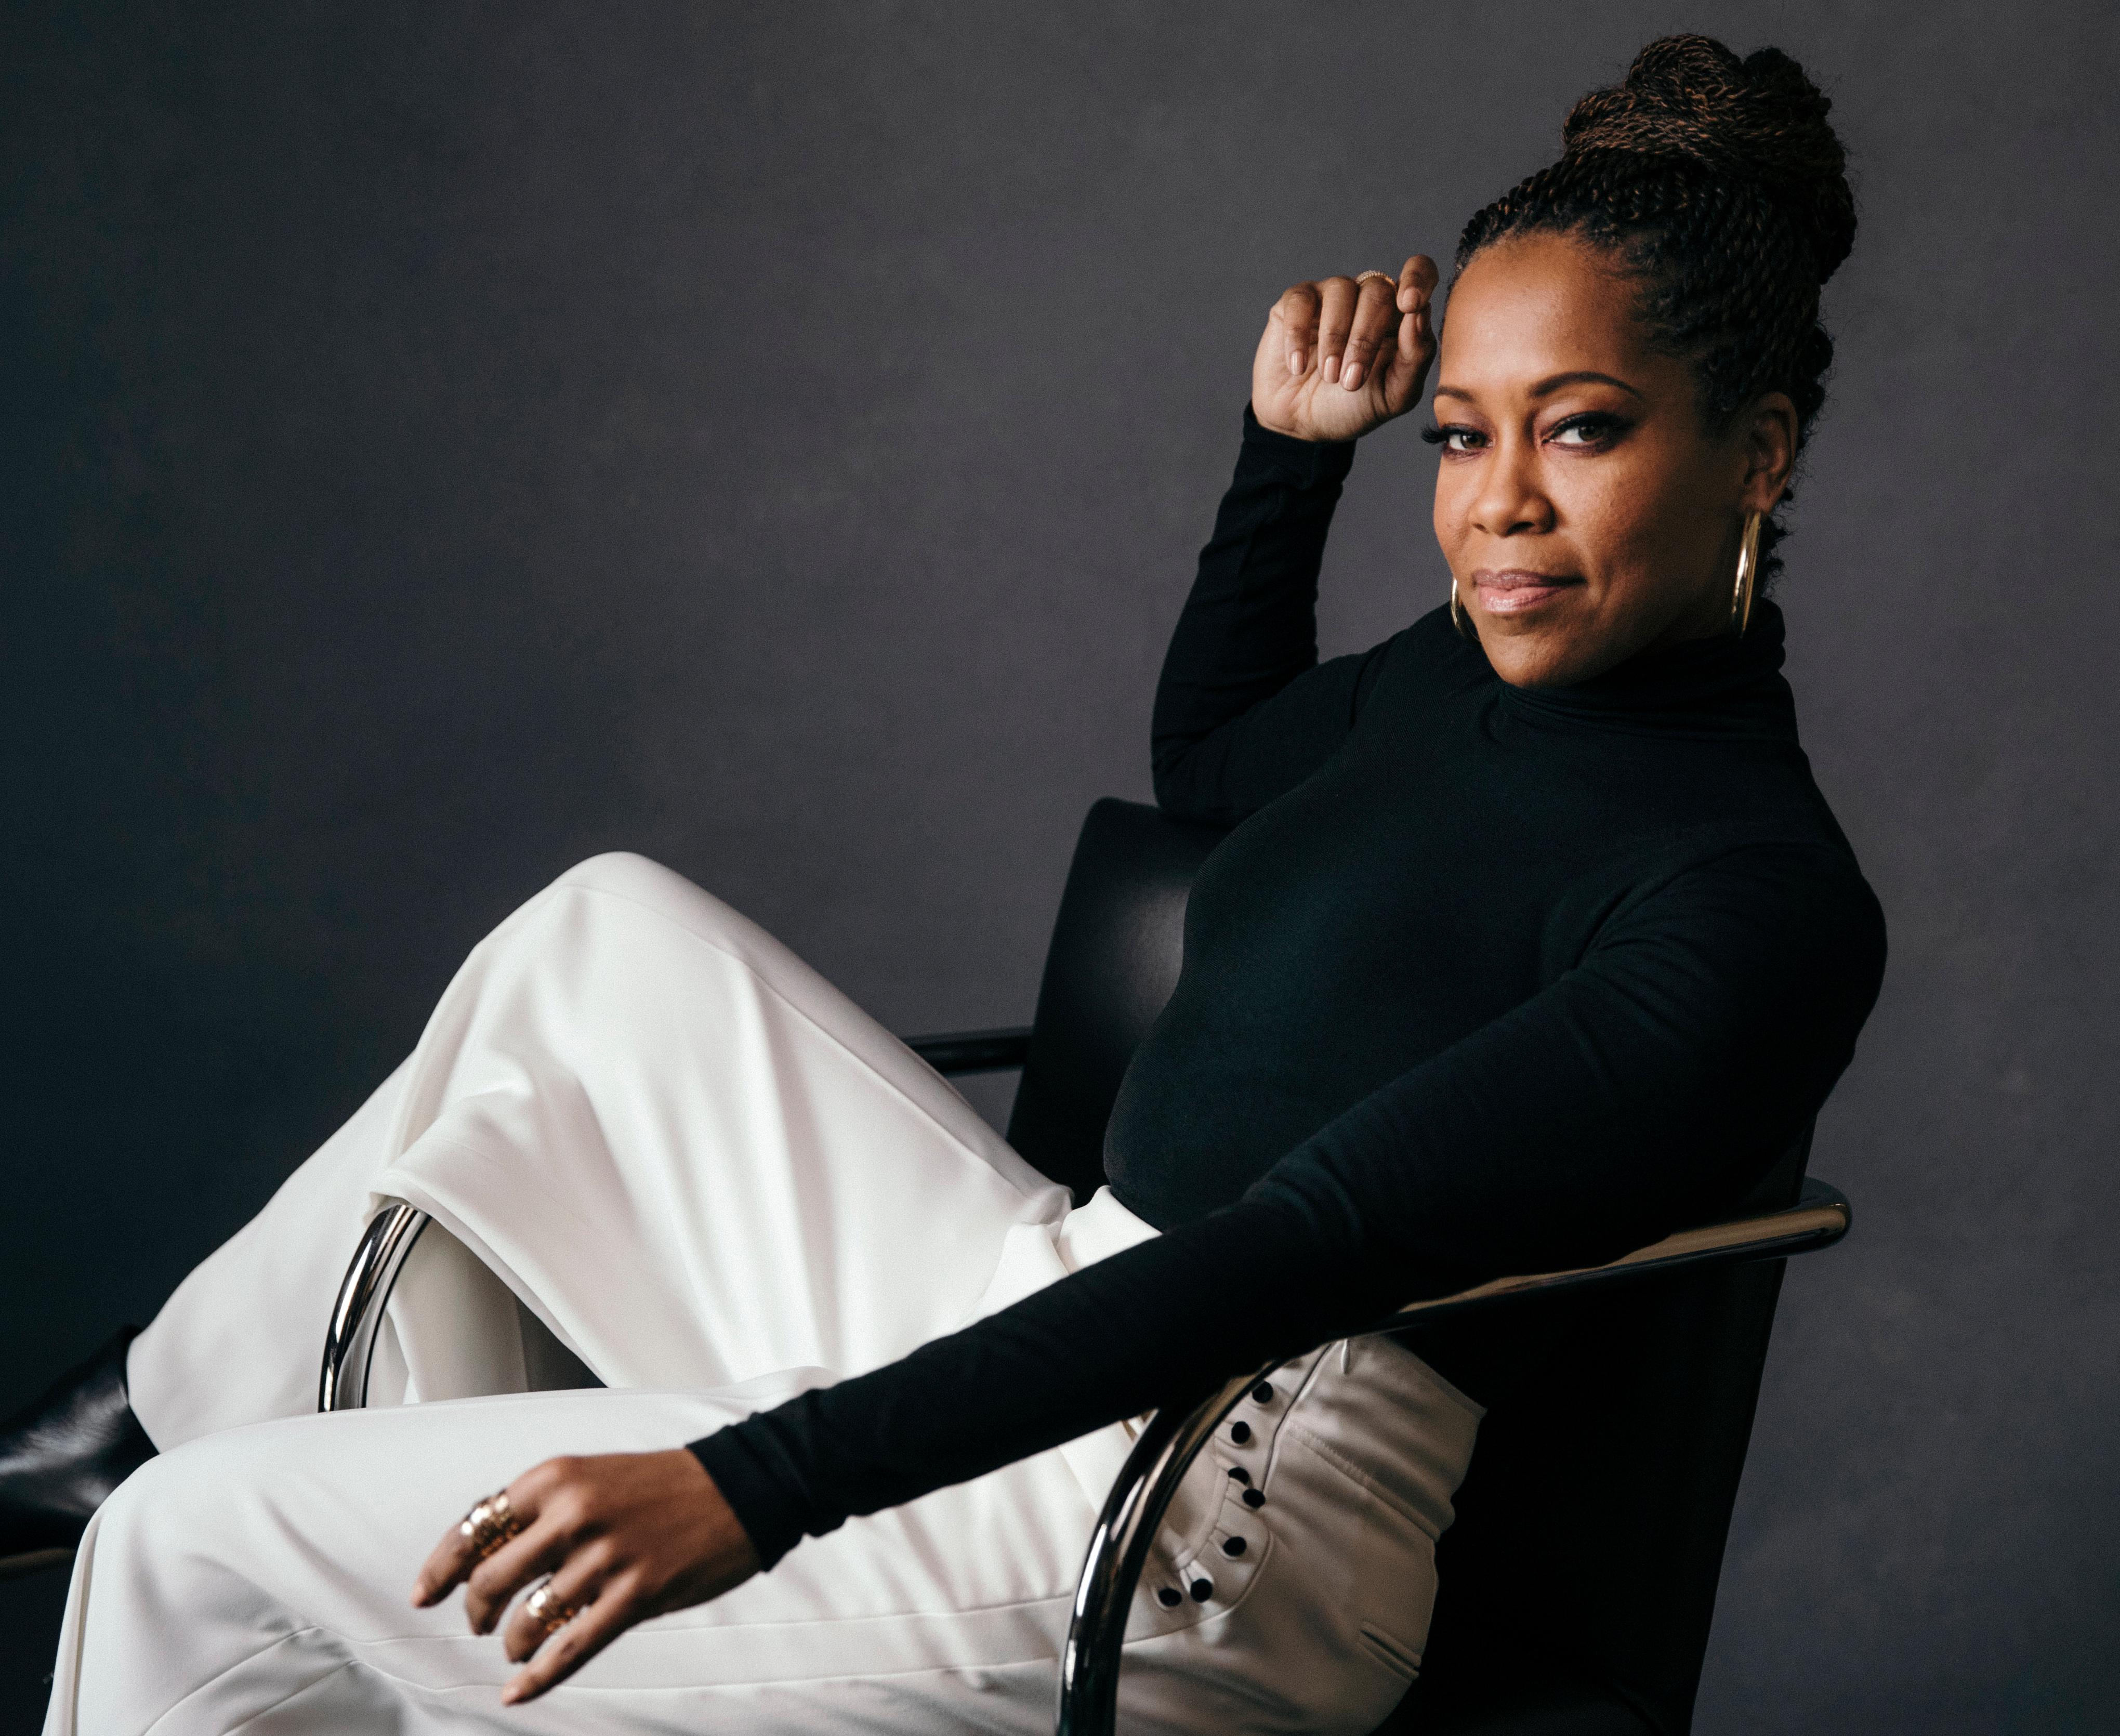 Regina King on fighting white supremacists in Watchmen: 'My community is living this story'